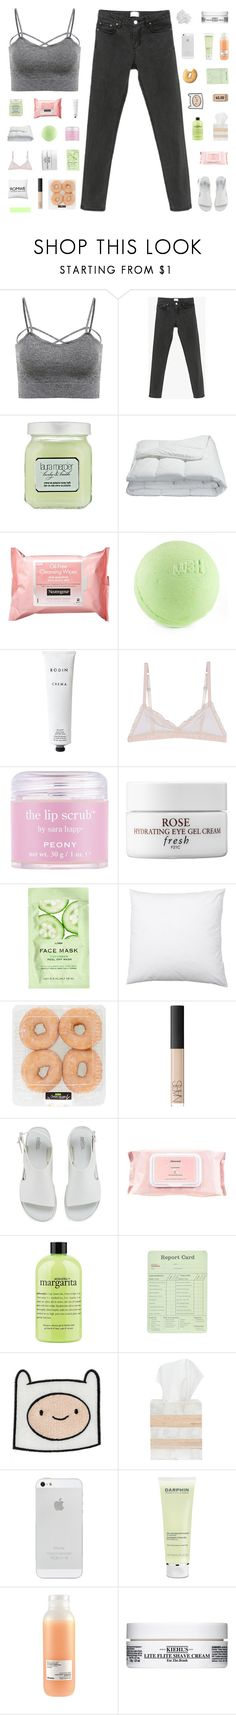 """""""I did my best"""" by ready-to-run-away ❤ liked on Polyvore featuring Laura Mercier, Frette, Neutrogena, Rodin Olio Lusso, Hoff By Hoff, Sara Happ, Fresh, H&M, NARS Cosmetics and Melissa"""